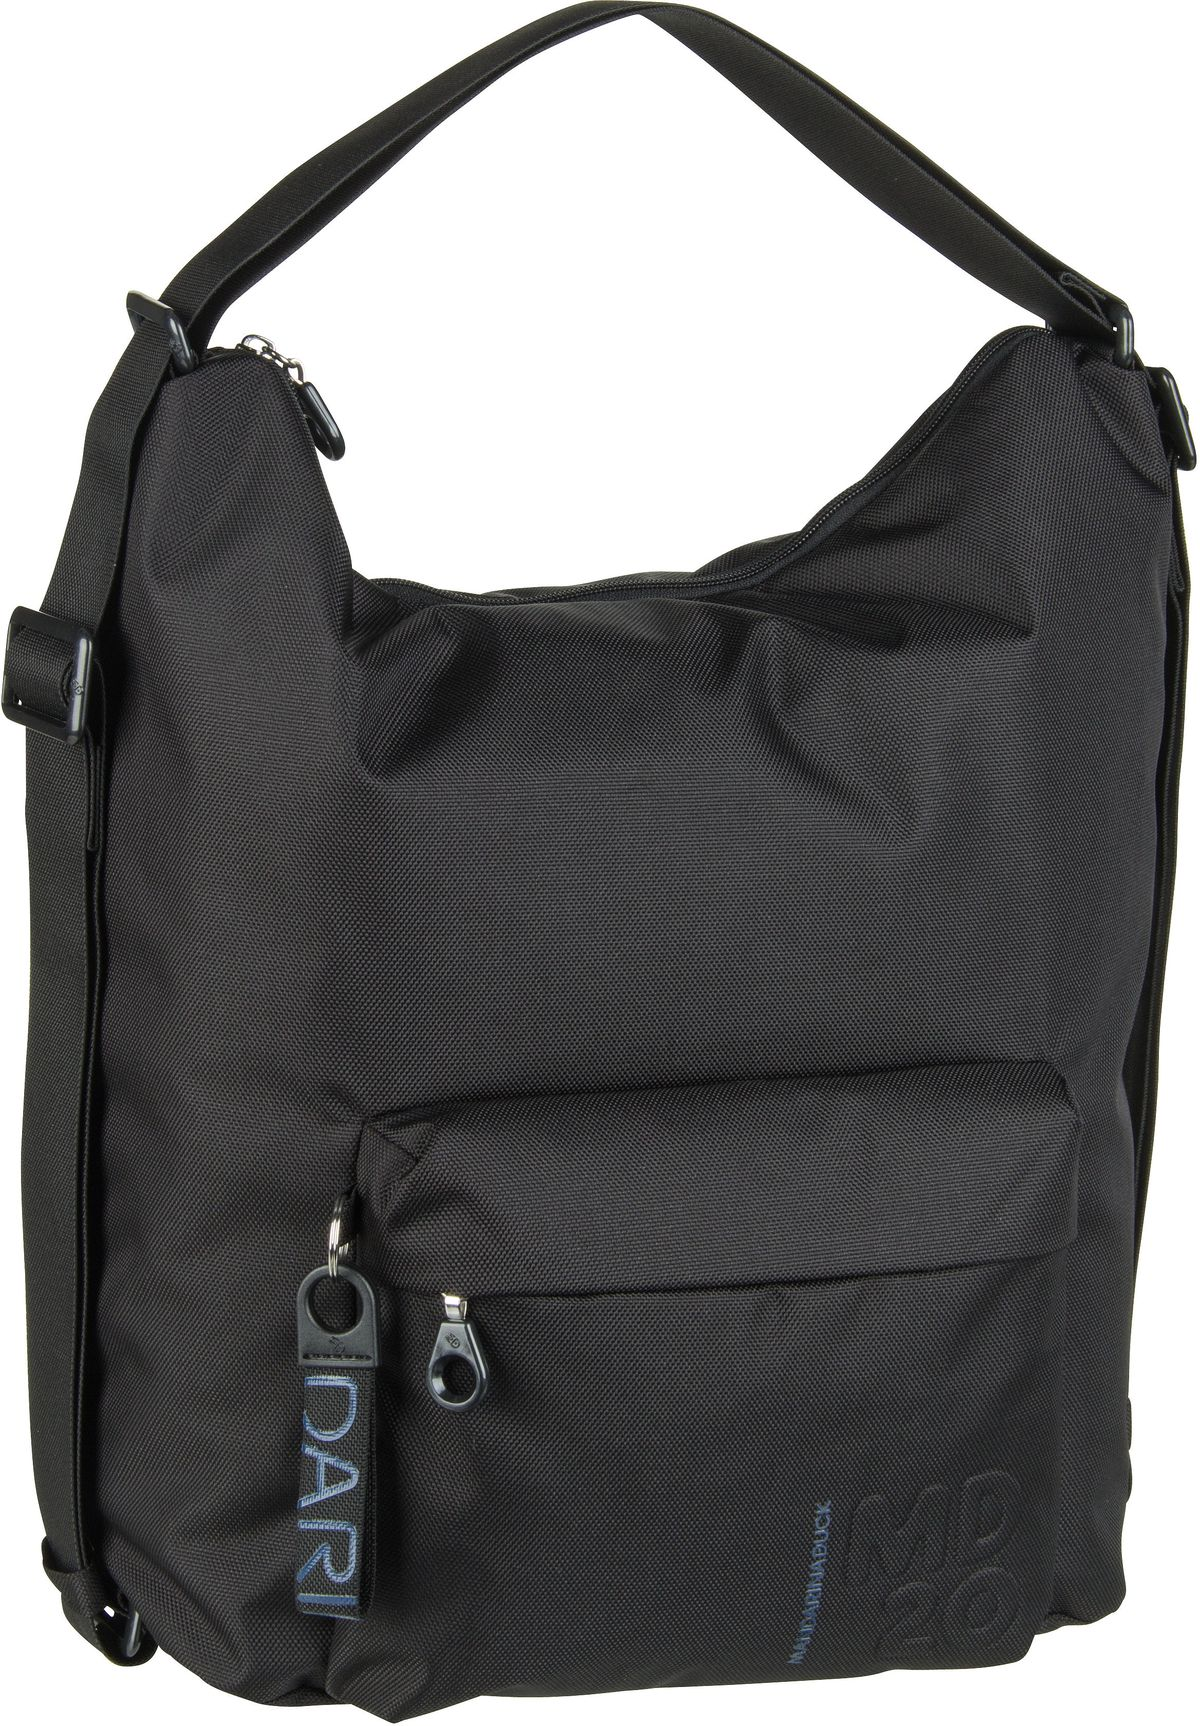 Handtasche MD20 Hobo Backpack QMT09 Black